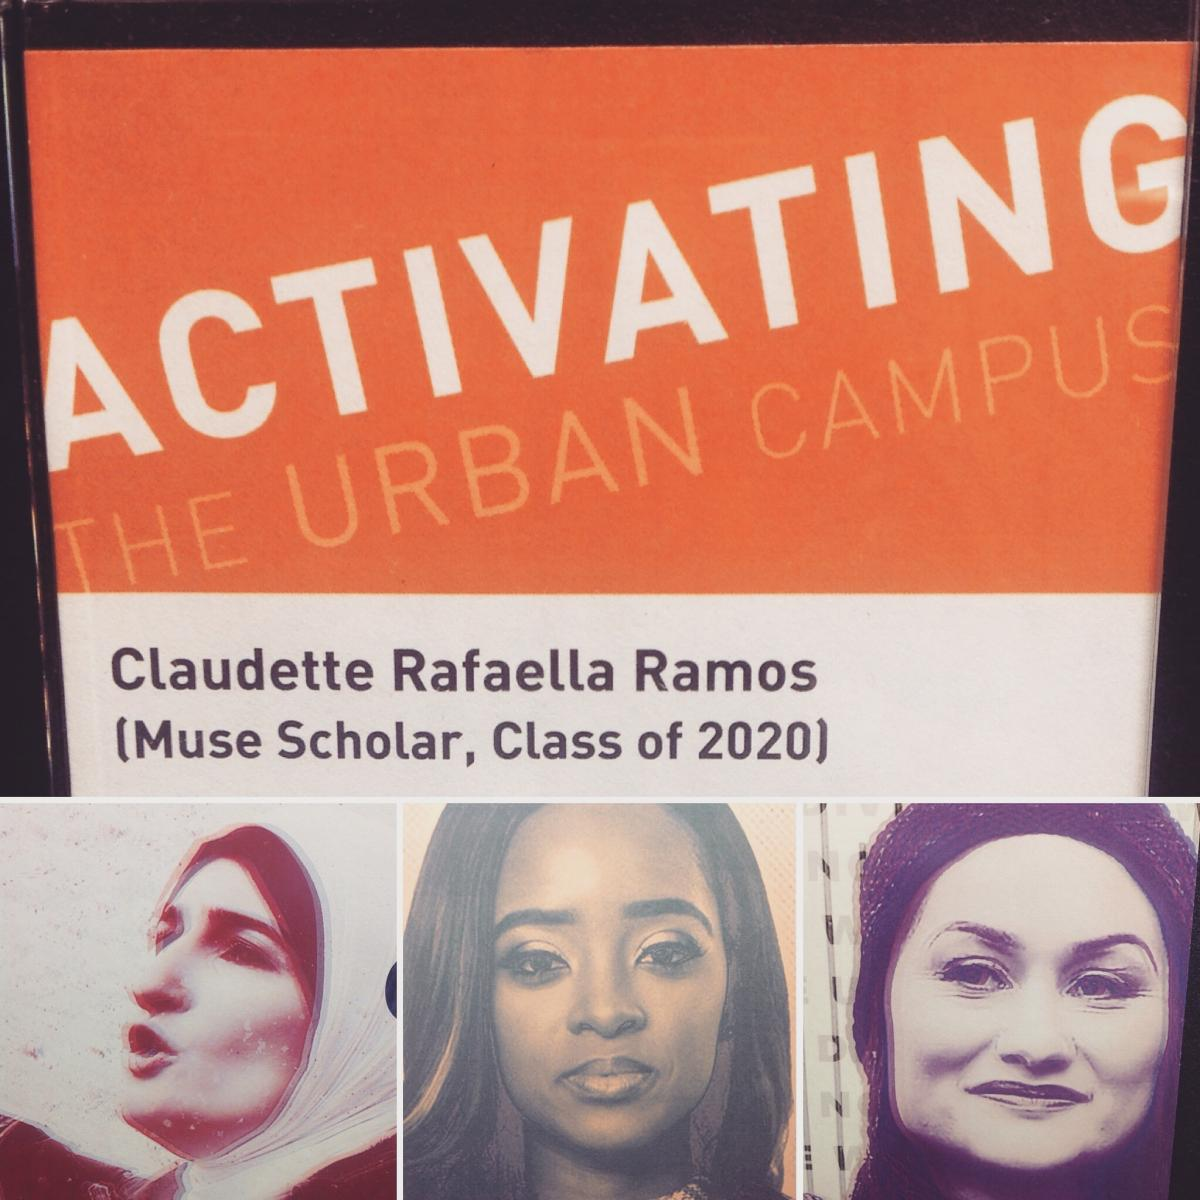 Detail from Activating the Urban Campus exhibit featuring the organizers of the Women's March on Washington